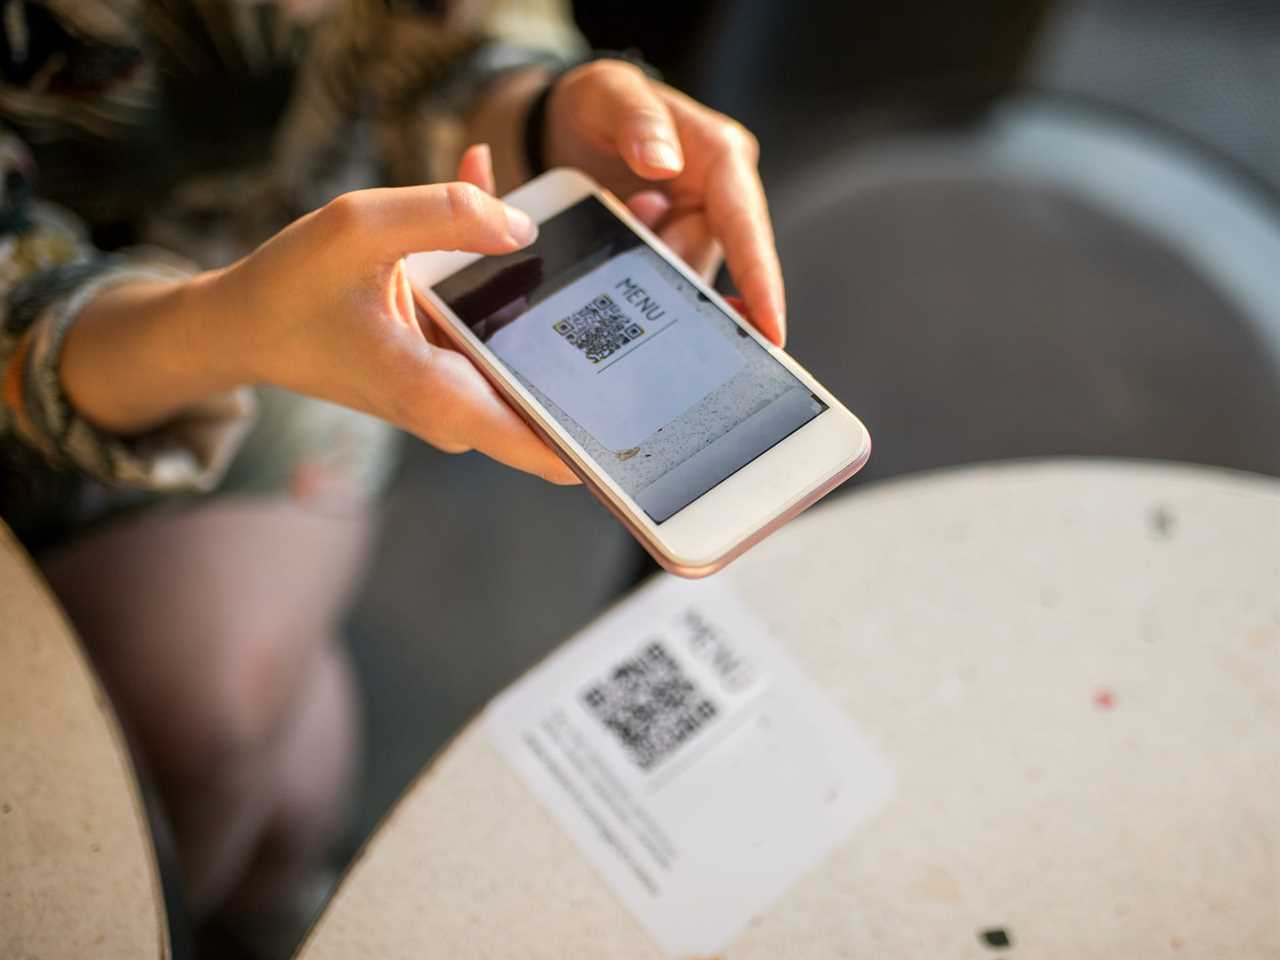 Scanning a QR Code at restaurant